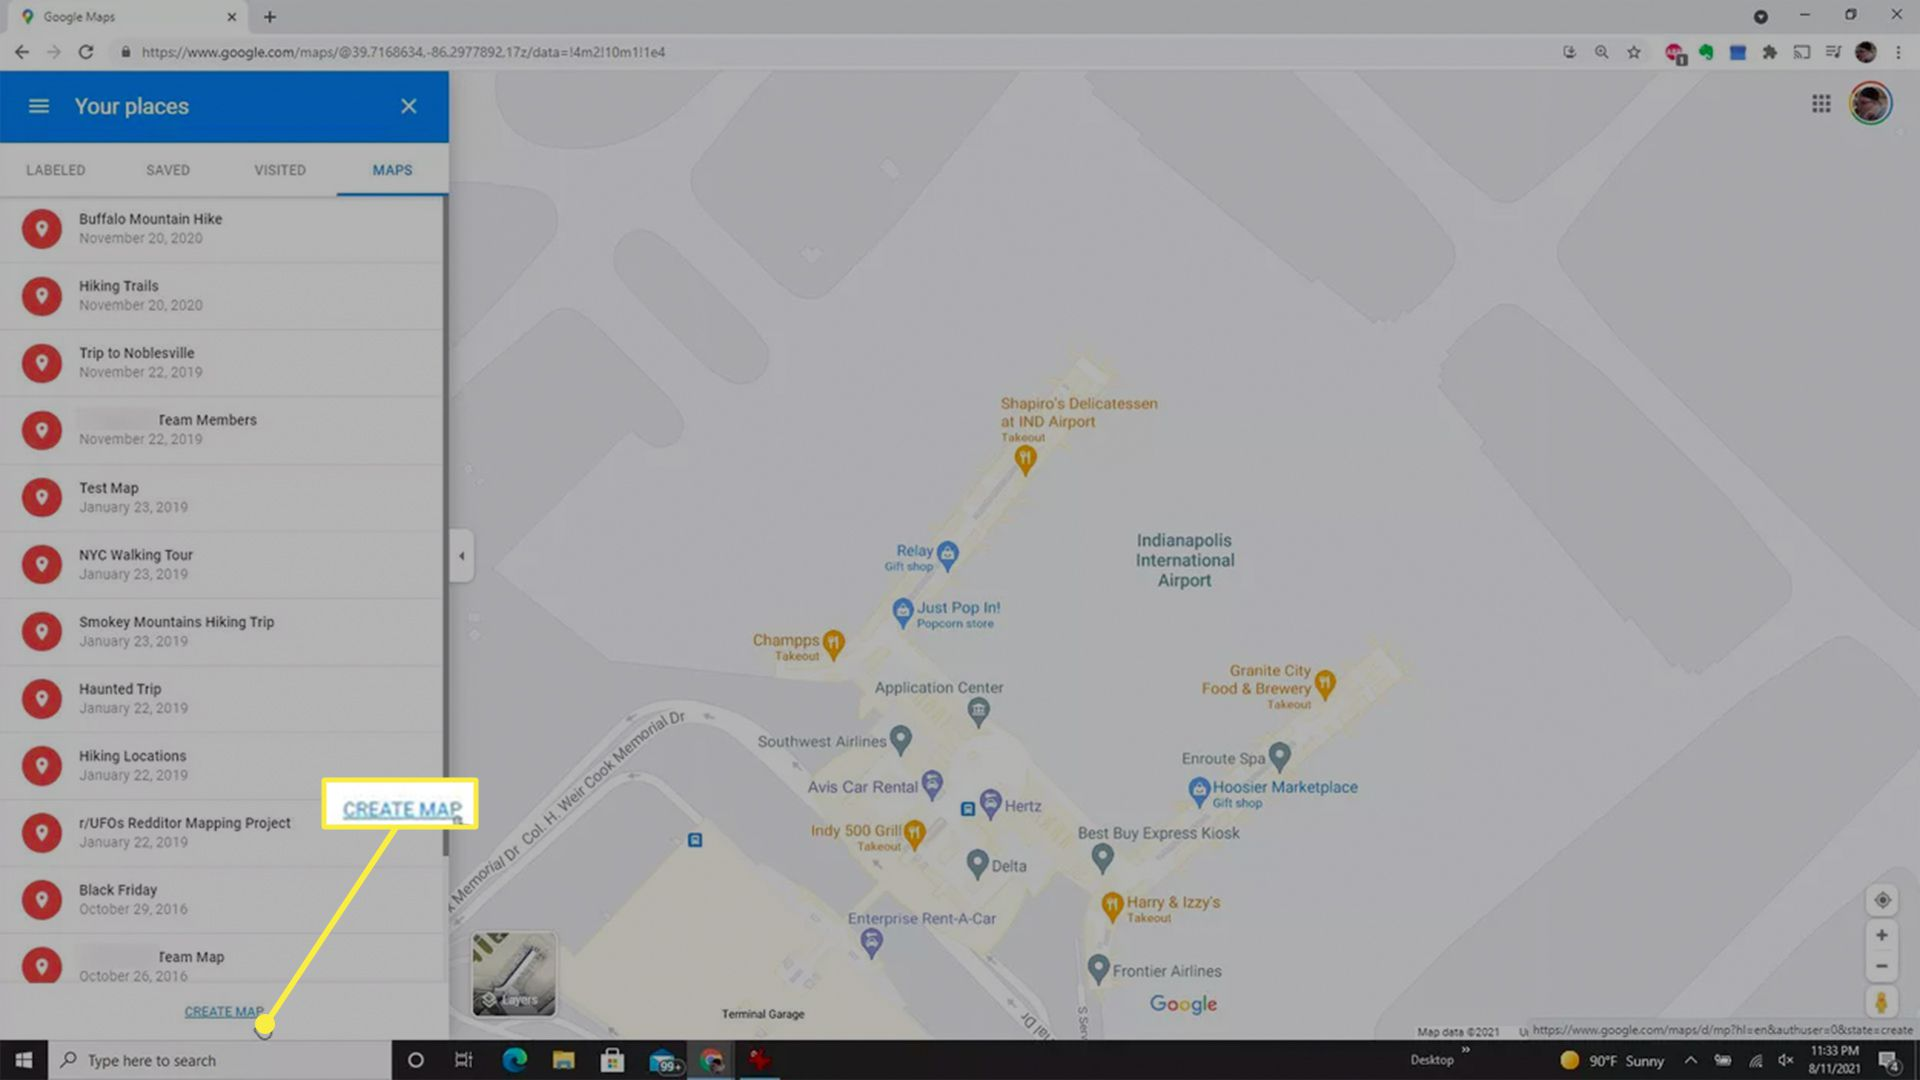 The Create Map option highlighted from Google Maps.